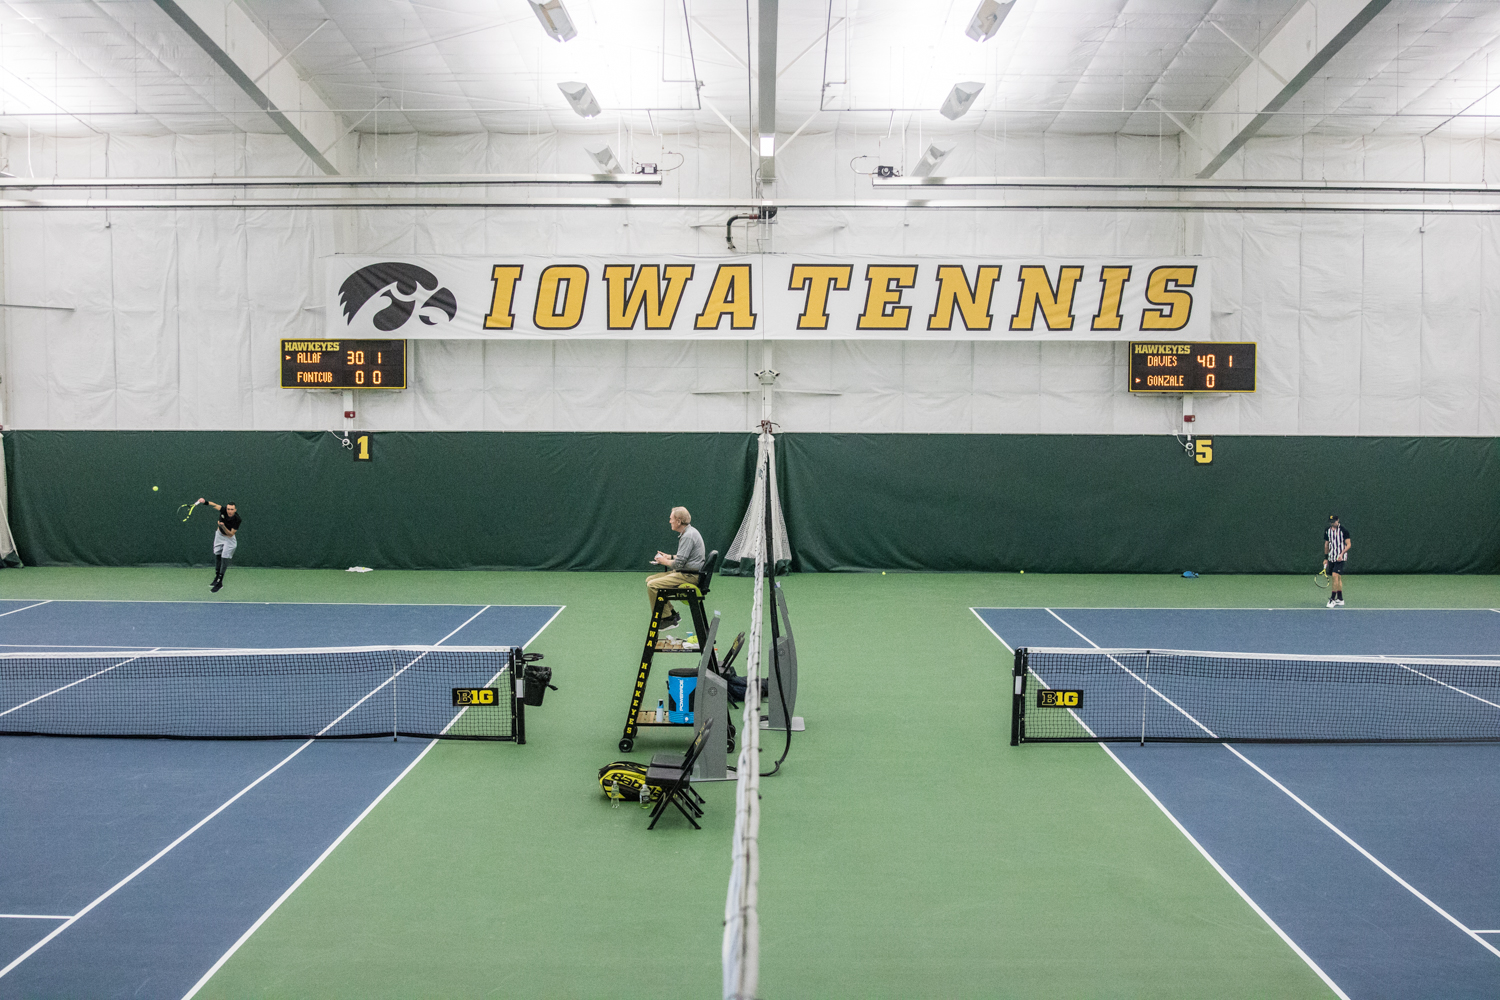 Singles+matches+are+underway+during+a+men%27s+tennis+match+between+Iowa+and+East+Tennessee+State+on+Friday%2C+January+25%2C+2019.+The+Hawkeyes+defeated+the+Buccaneers%2C+4-3.